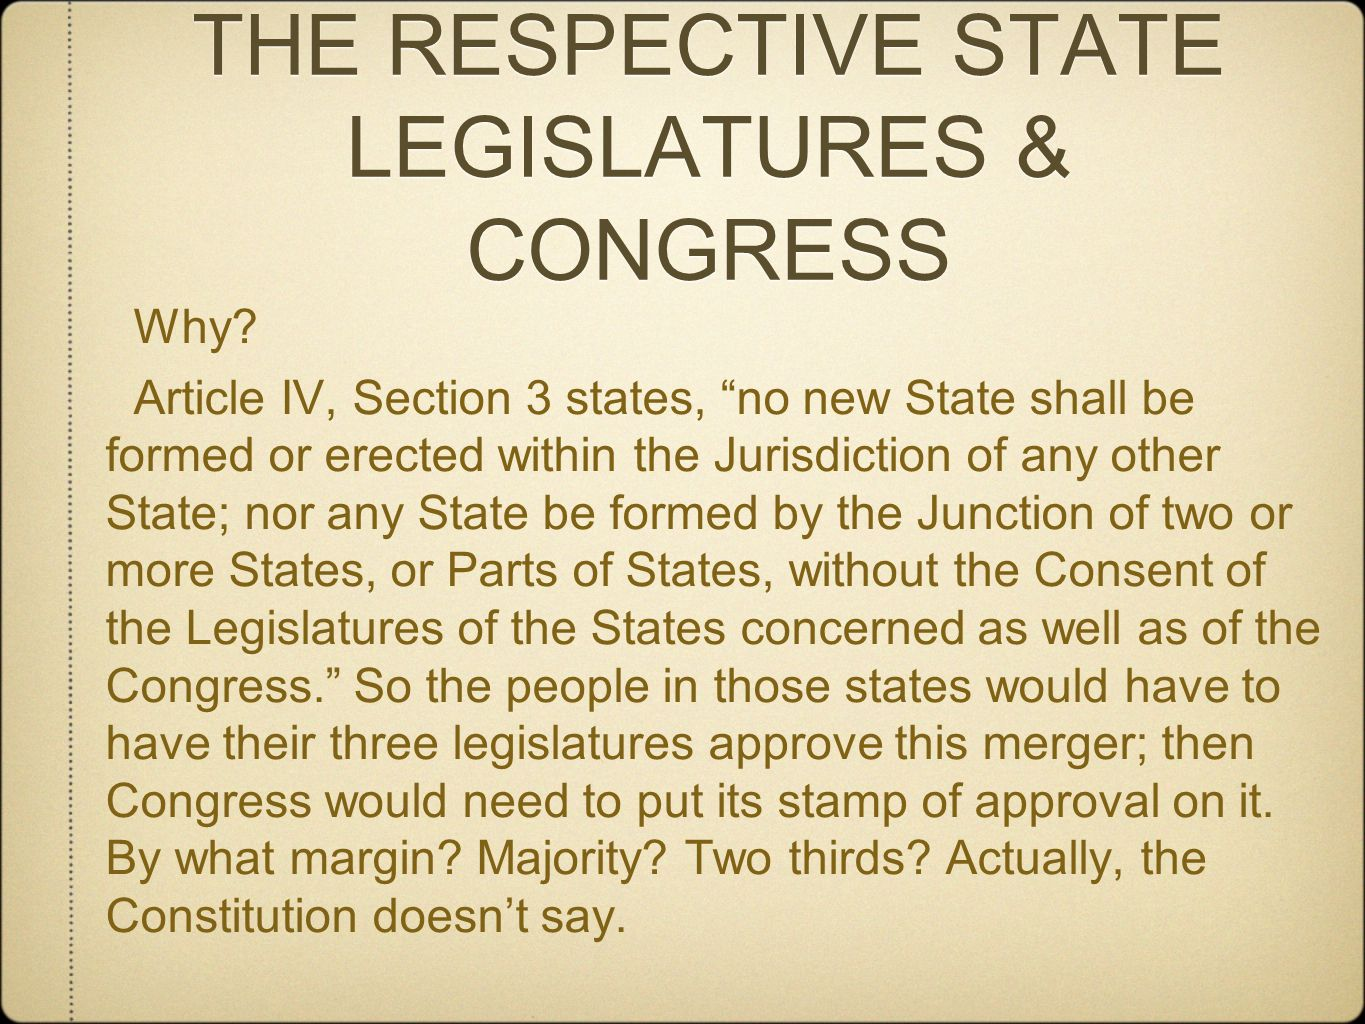 THE RESPECTIVE STATE LEGISLATURES & CONGRESS THE RESPECTIVE STATE LEGISLATURES & CONGRESS Why? Article IV, Section 3 states, no new State shall be for